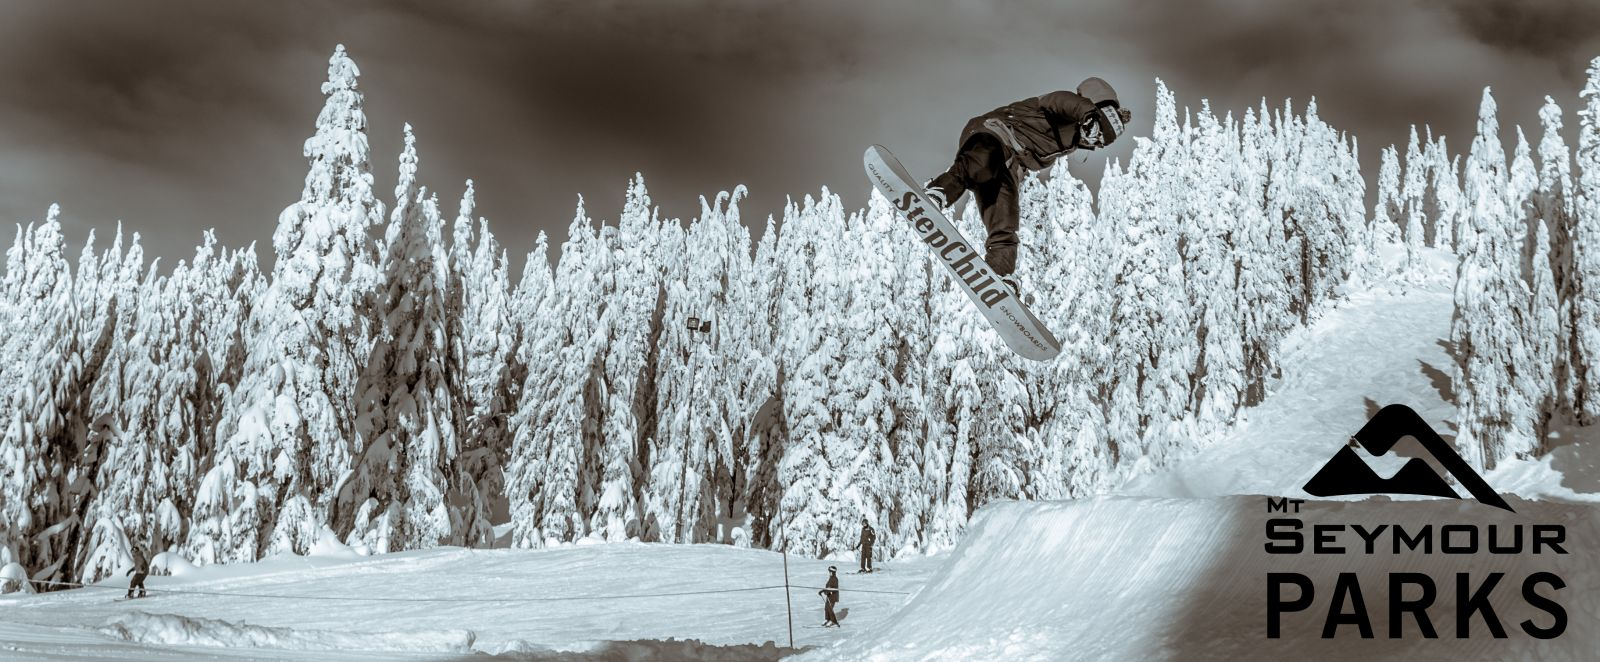 Snowboarder in Northlands Terrain Park at Mt Seymour in Vancouver